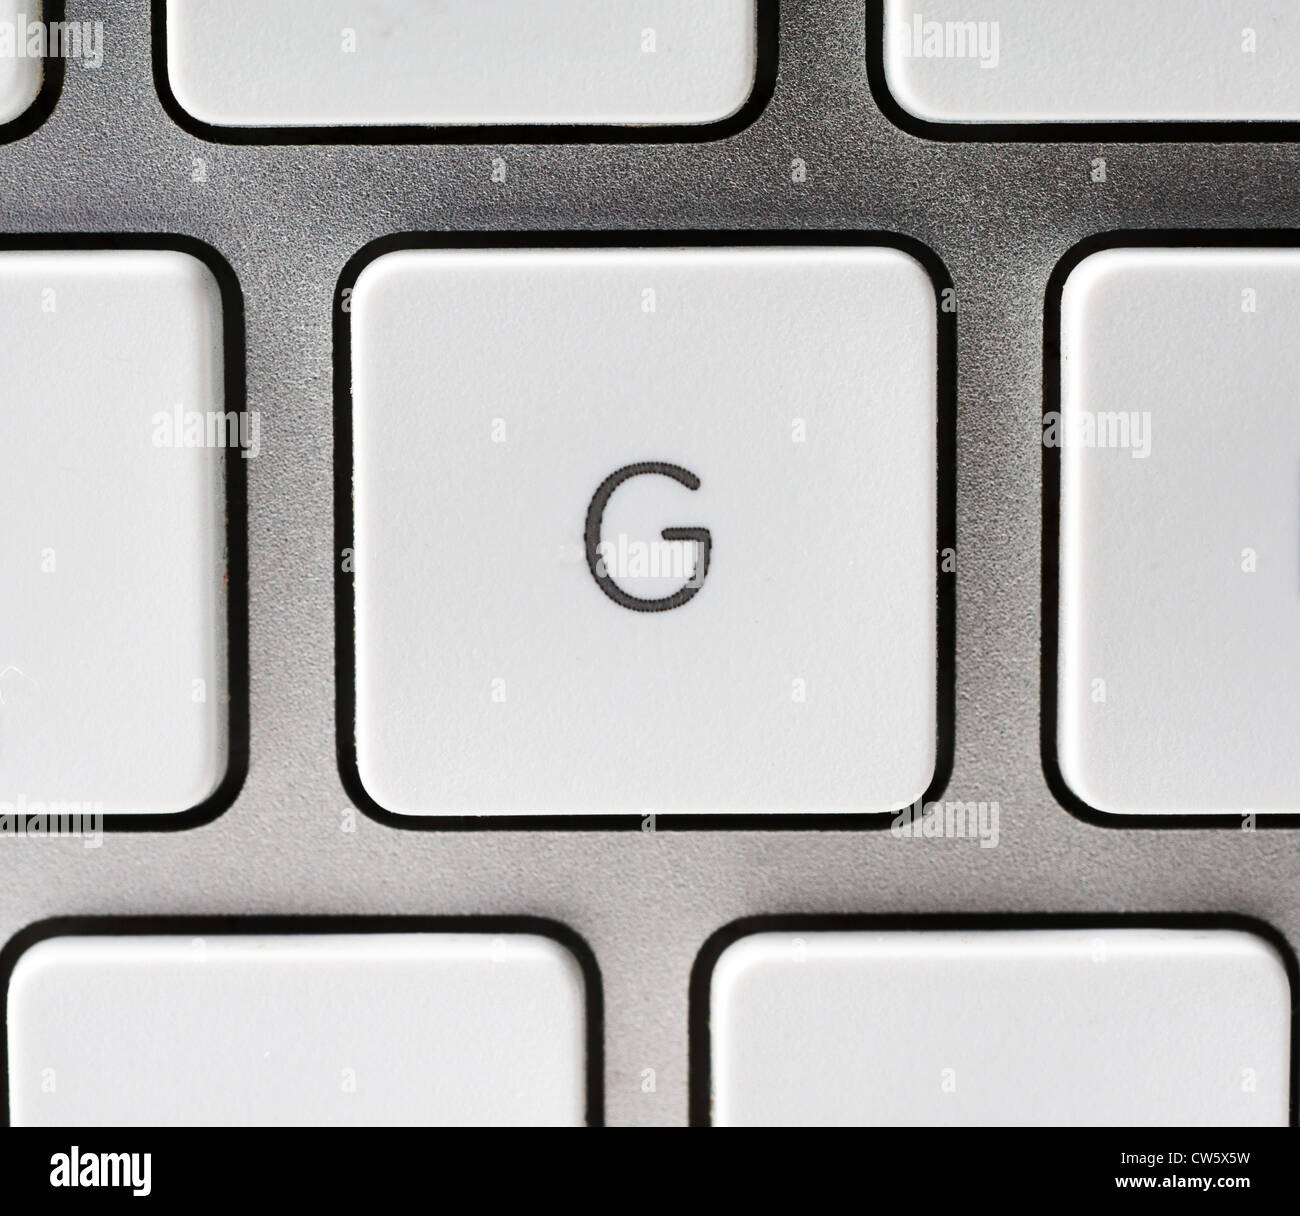 Letter G on an Apple keyboard - Stock Image